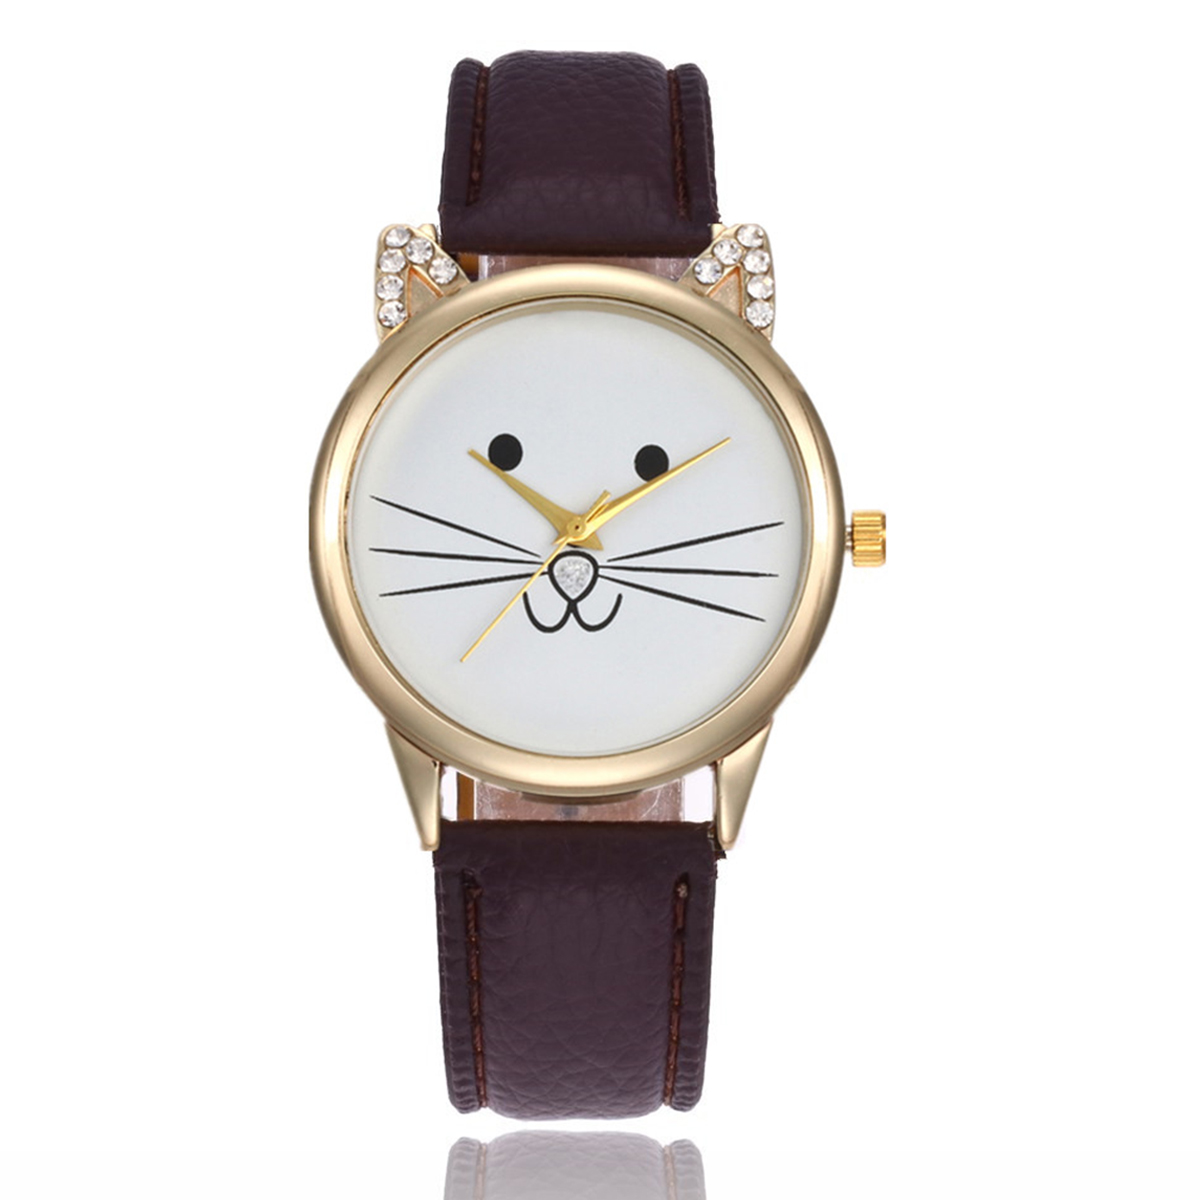 Women Girl Cute Cat Face Watch Fashion Casual Crystal Cartoon Cat Ears Leather Strap Analog Quartz Wrist Watches Gift Shellhard analog watch